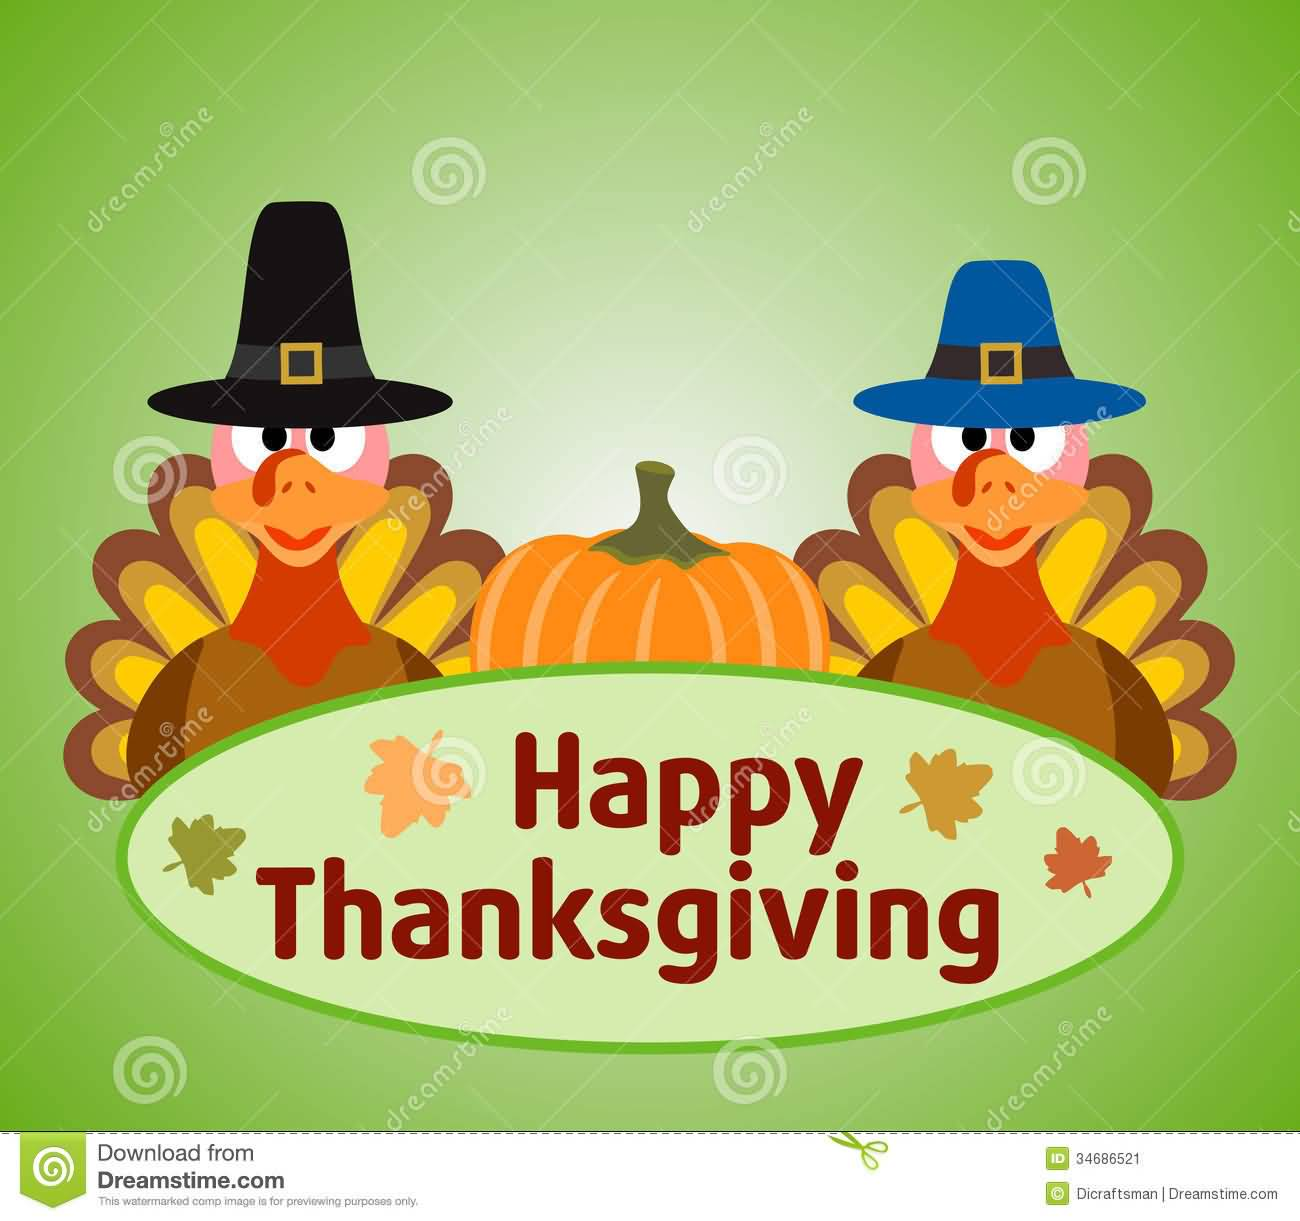 Thanksgiving clipart thanksgiving day Thanksgiving 2016 Day Happy Greeting